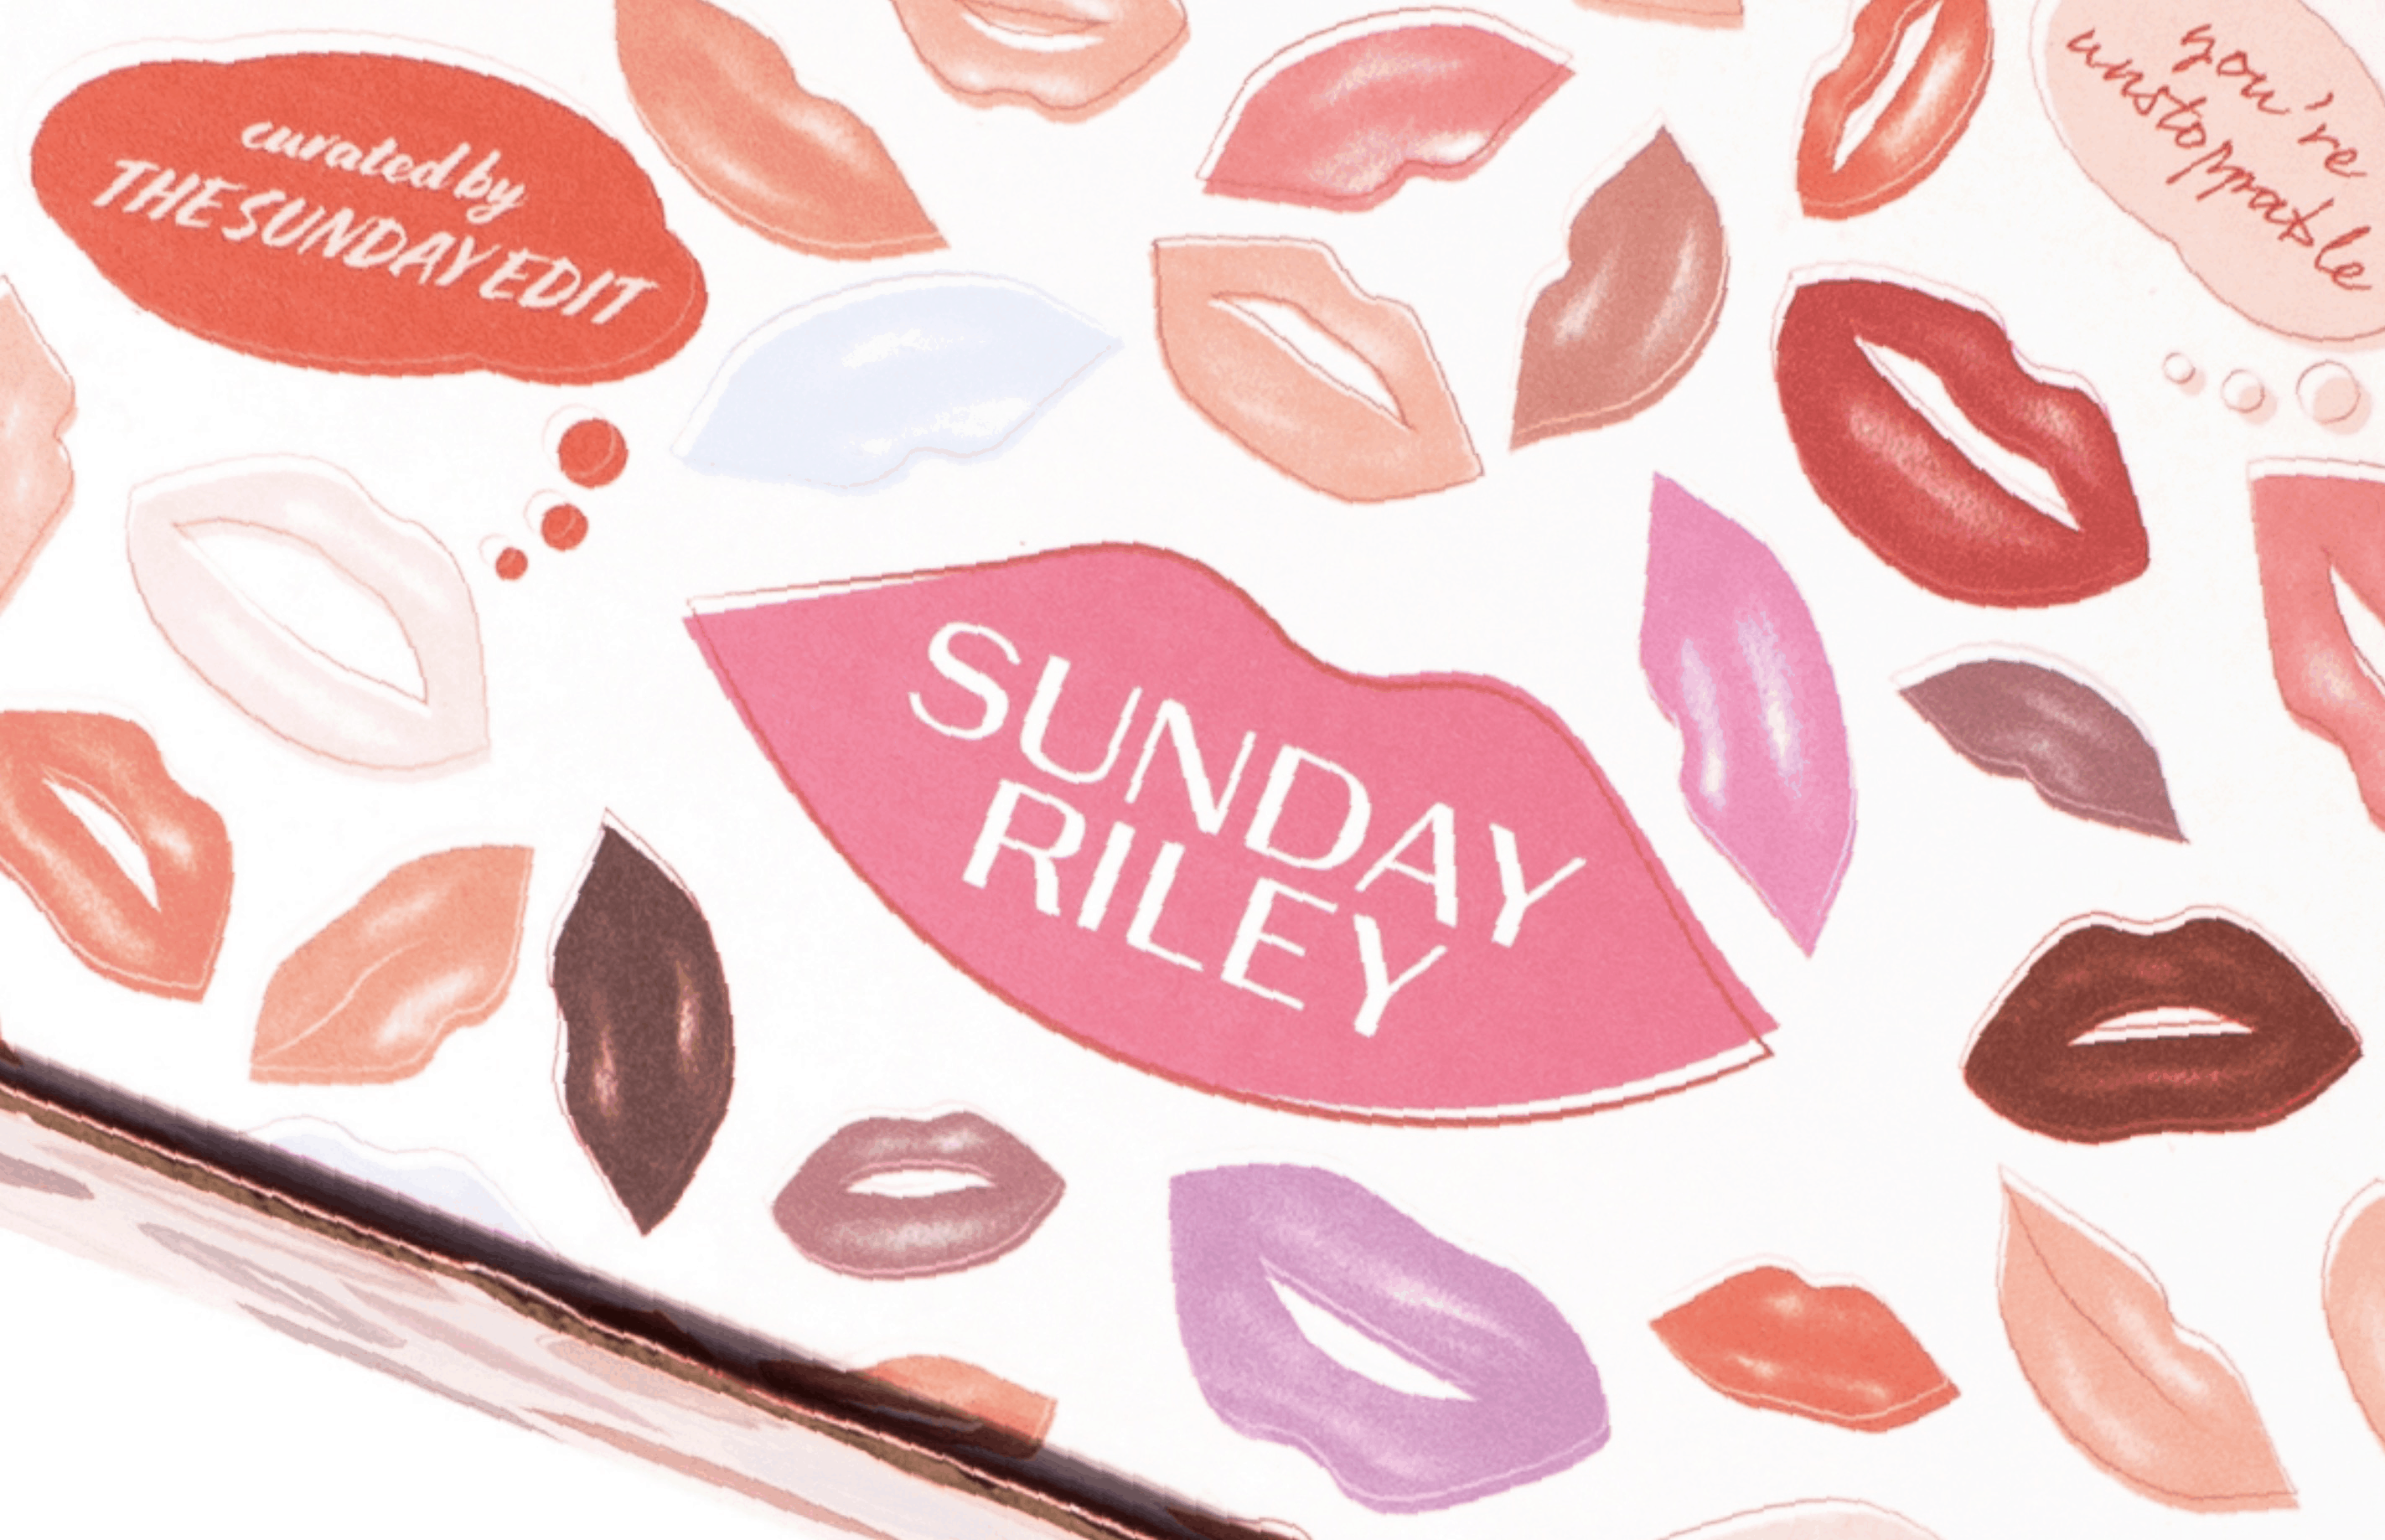 Sunday Riley Subscription Box Spring 2019 Shipping Update!